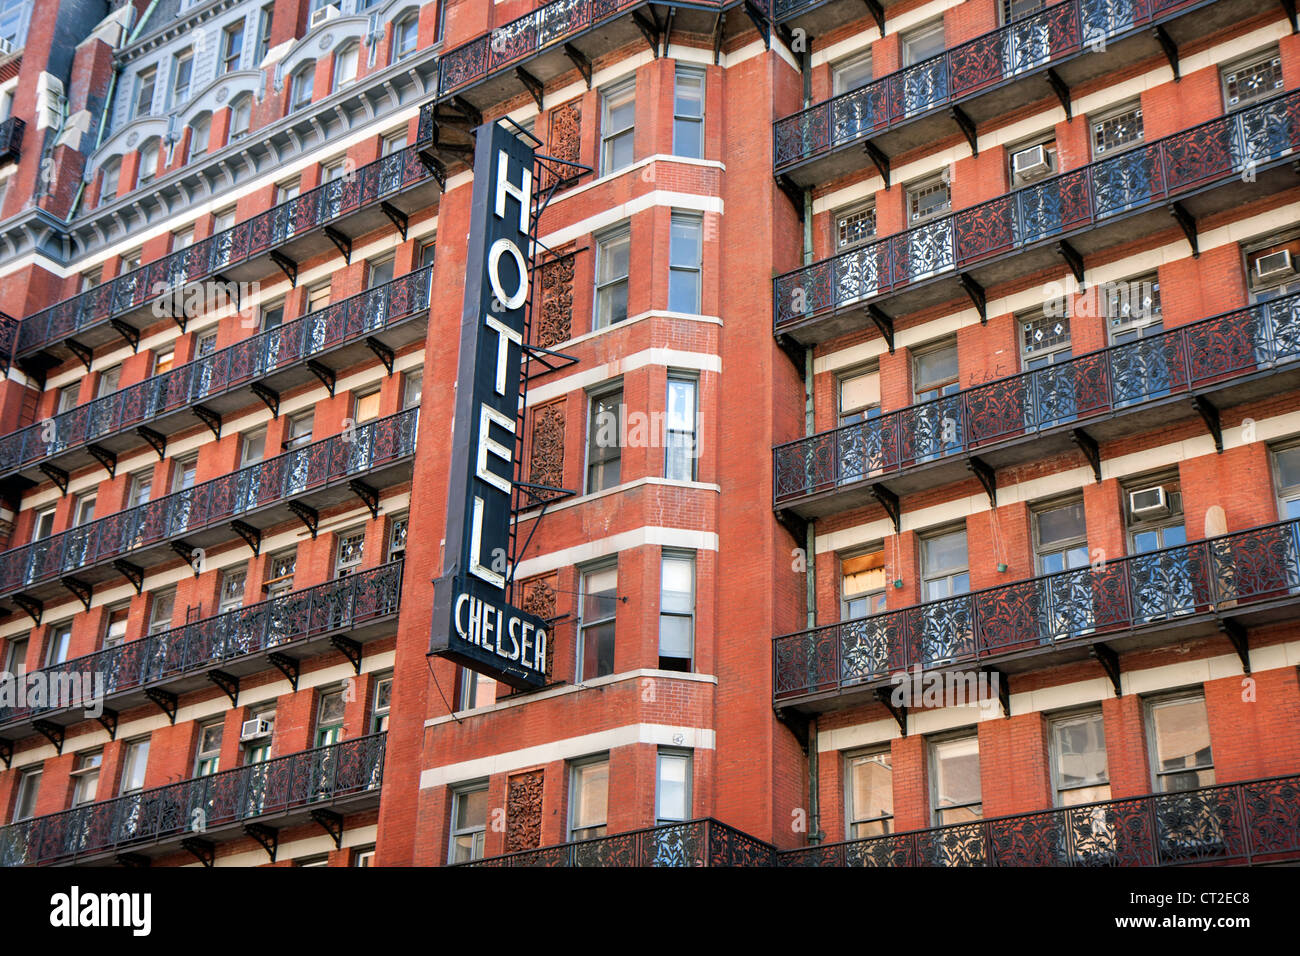 Building Of The Chelsea Hotel In New York It S A Historic Landmark Stock Photo Alamy